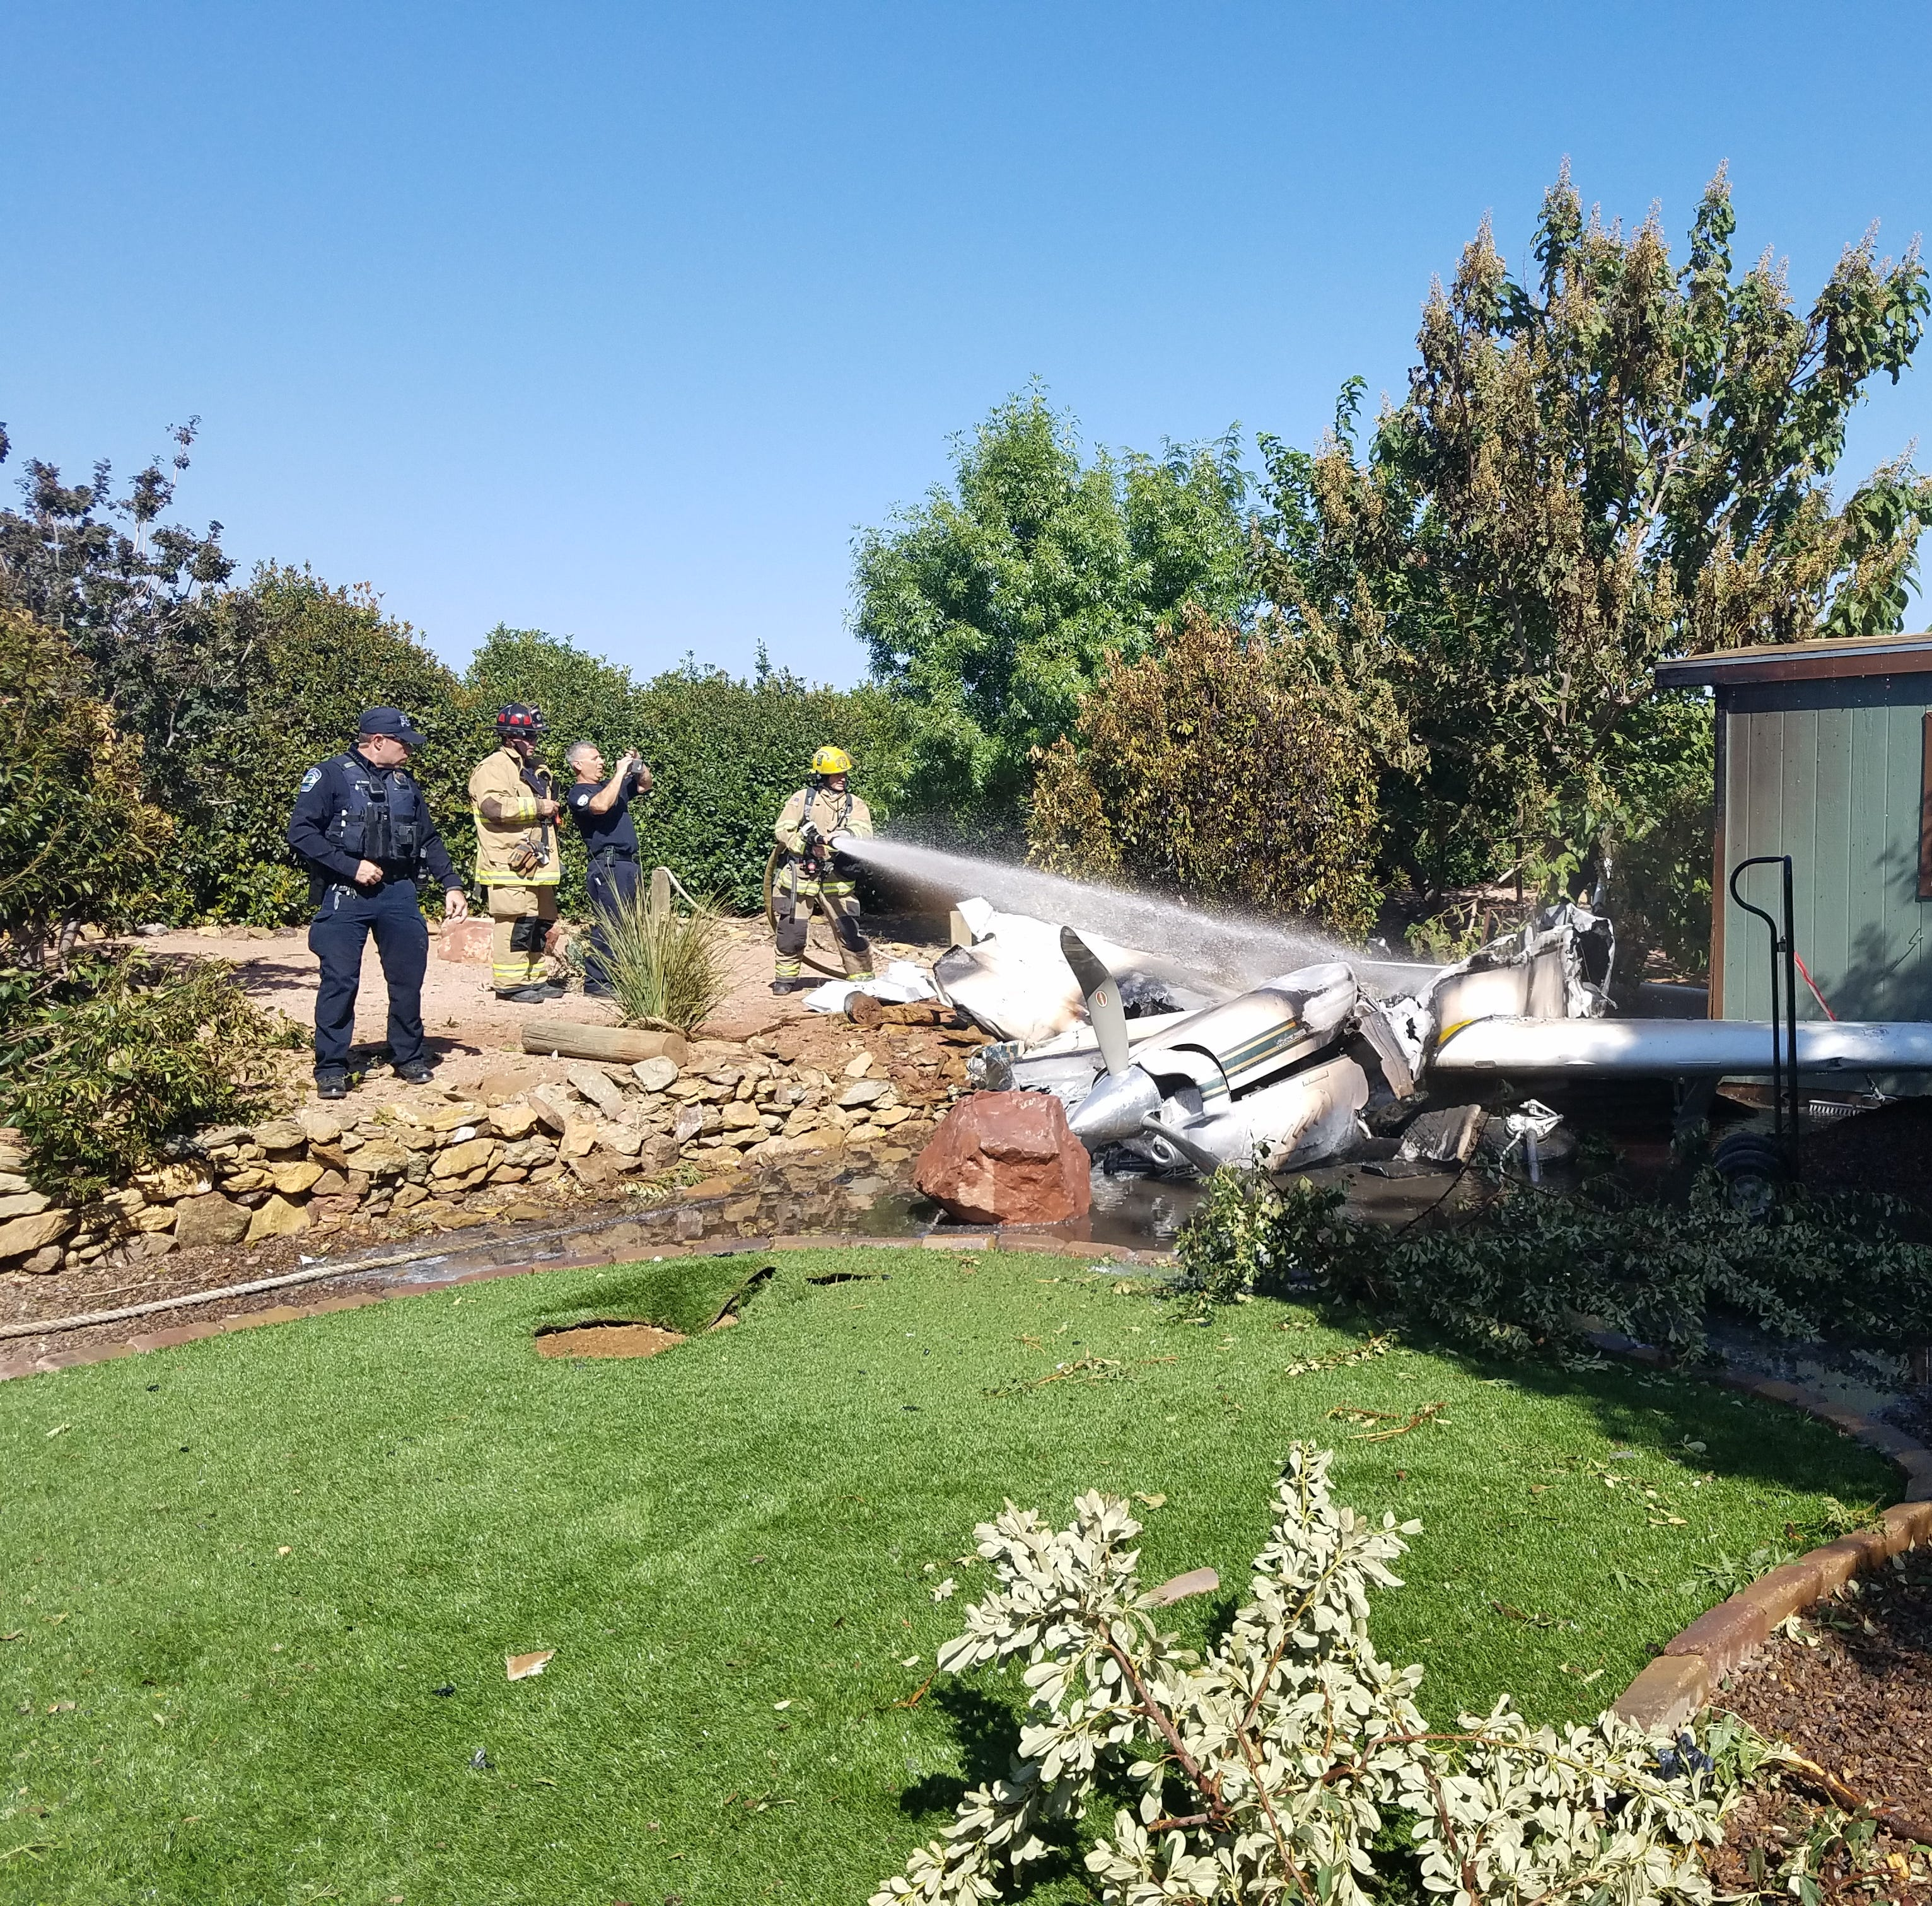 70-year-old pilot burned after small plane crashes into Cottonwood home